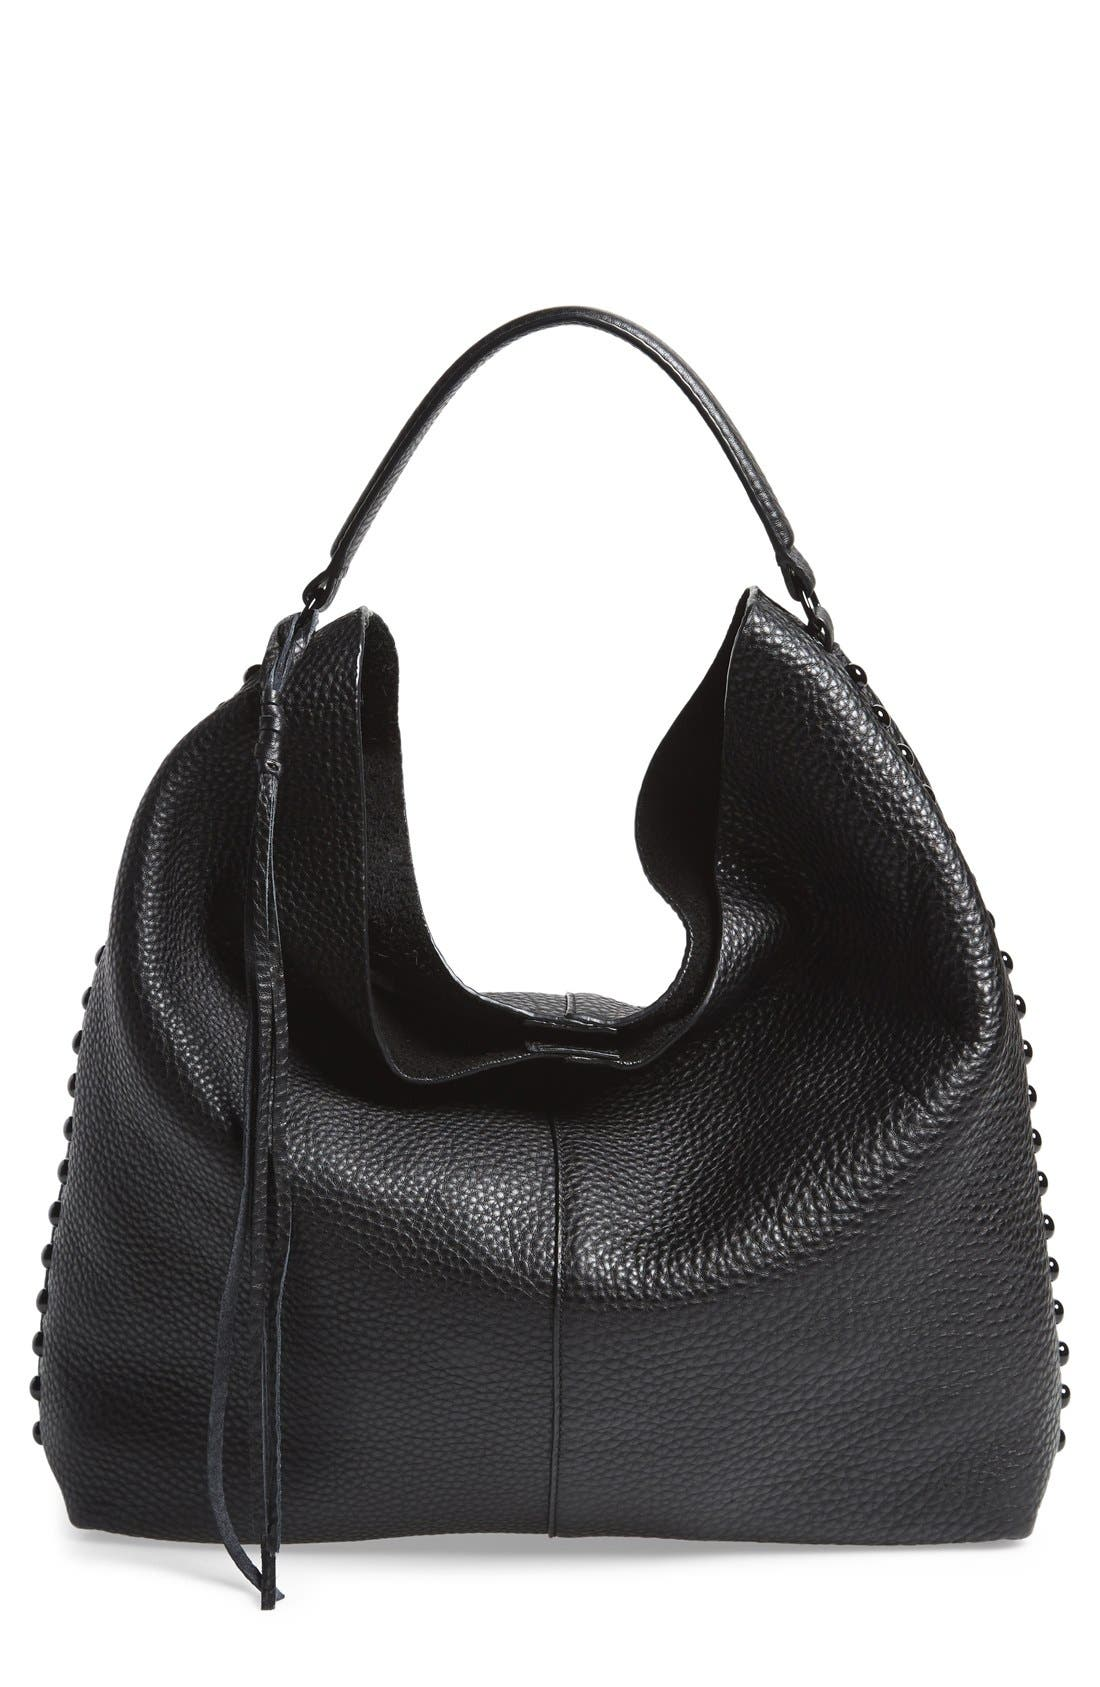 Main Image - Rebecca Minkoff Unlined Hobo